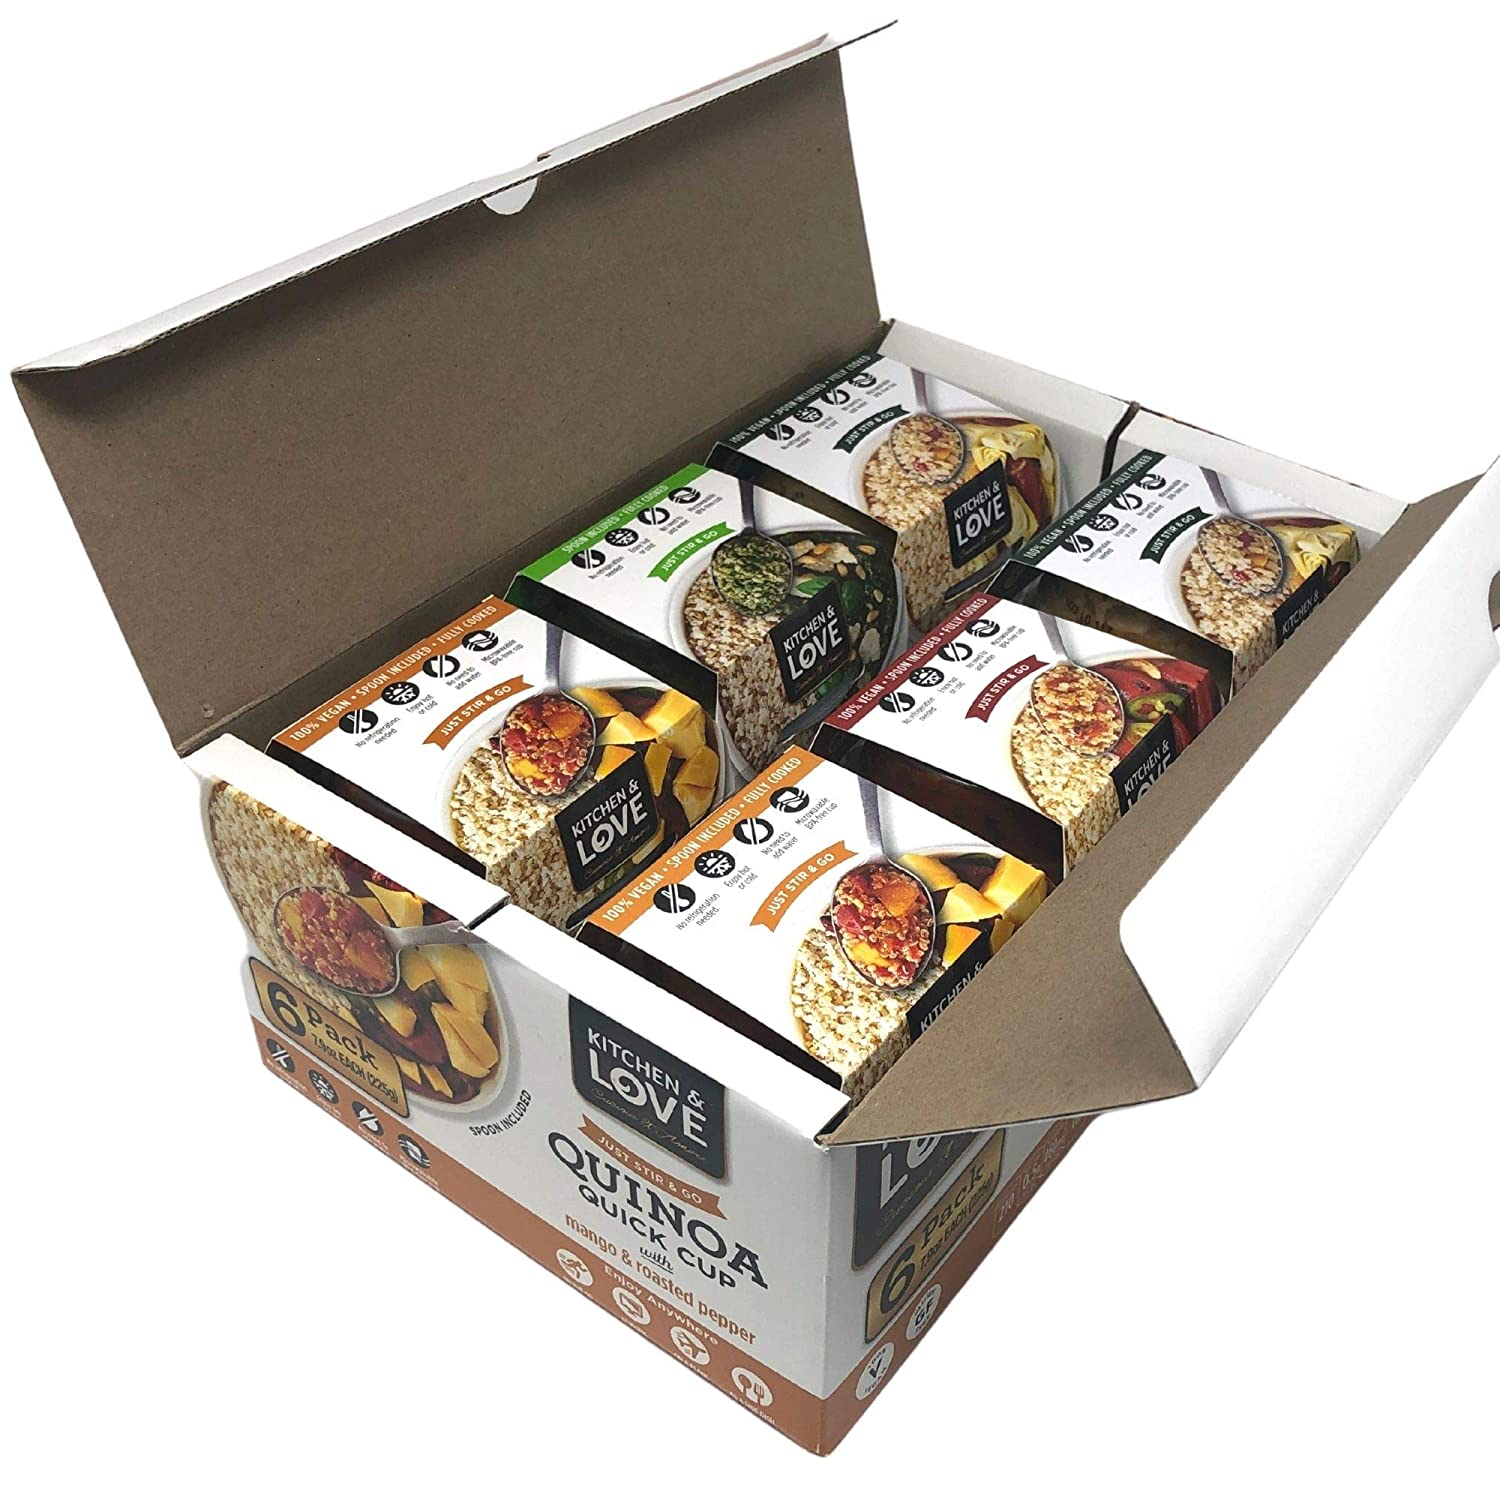 Kitchen & Love Quinoa Quick Meal Variety Box 6-Pack | Gluten Free, Ready-to-Eat, No Refrigeration Required